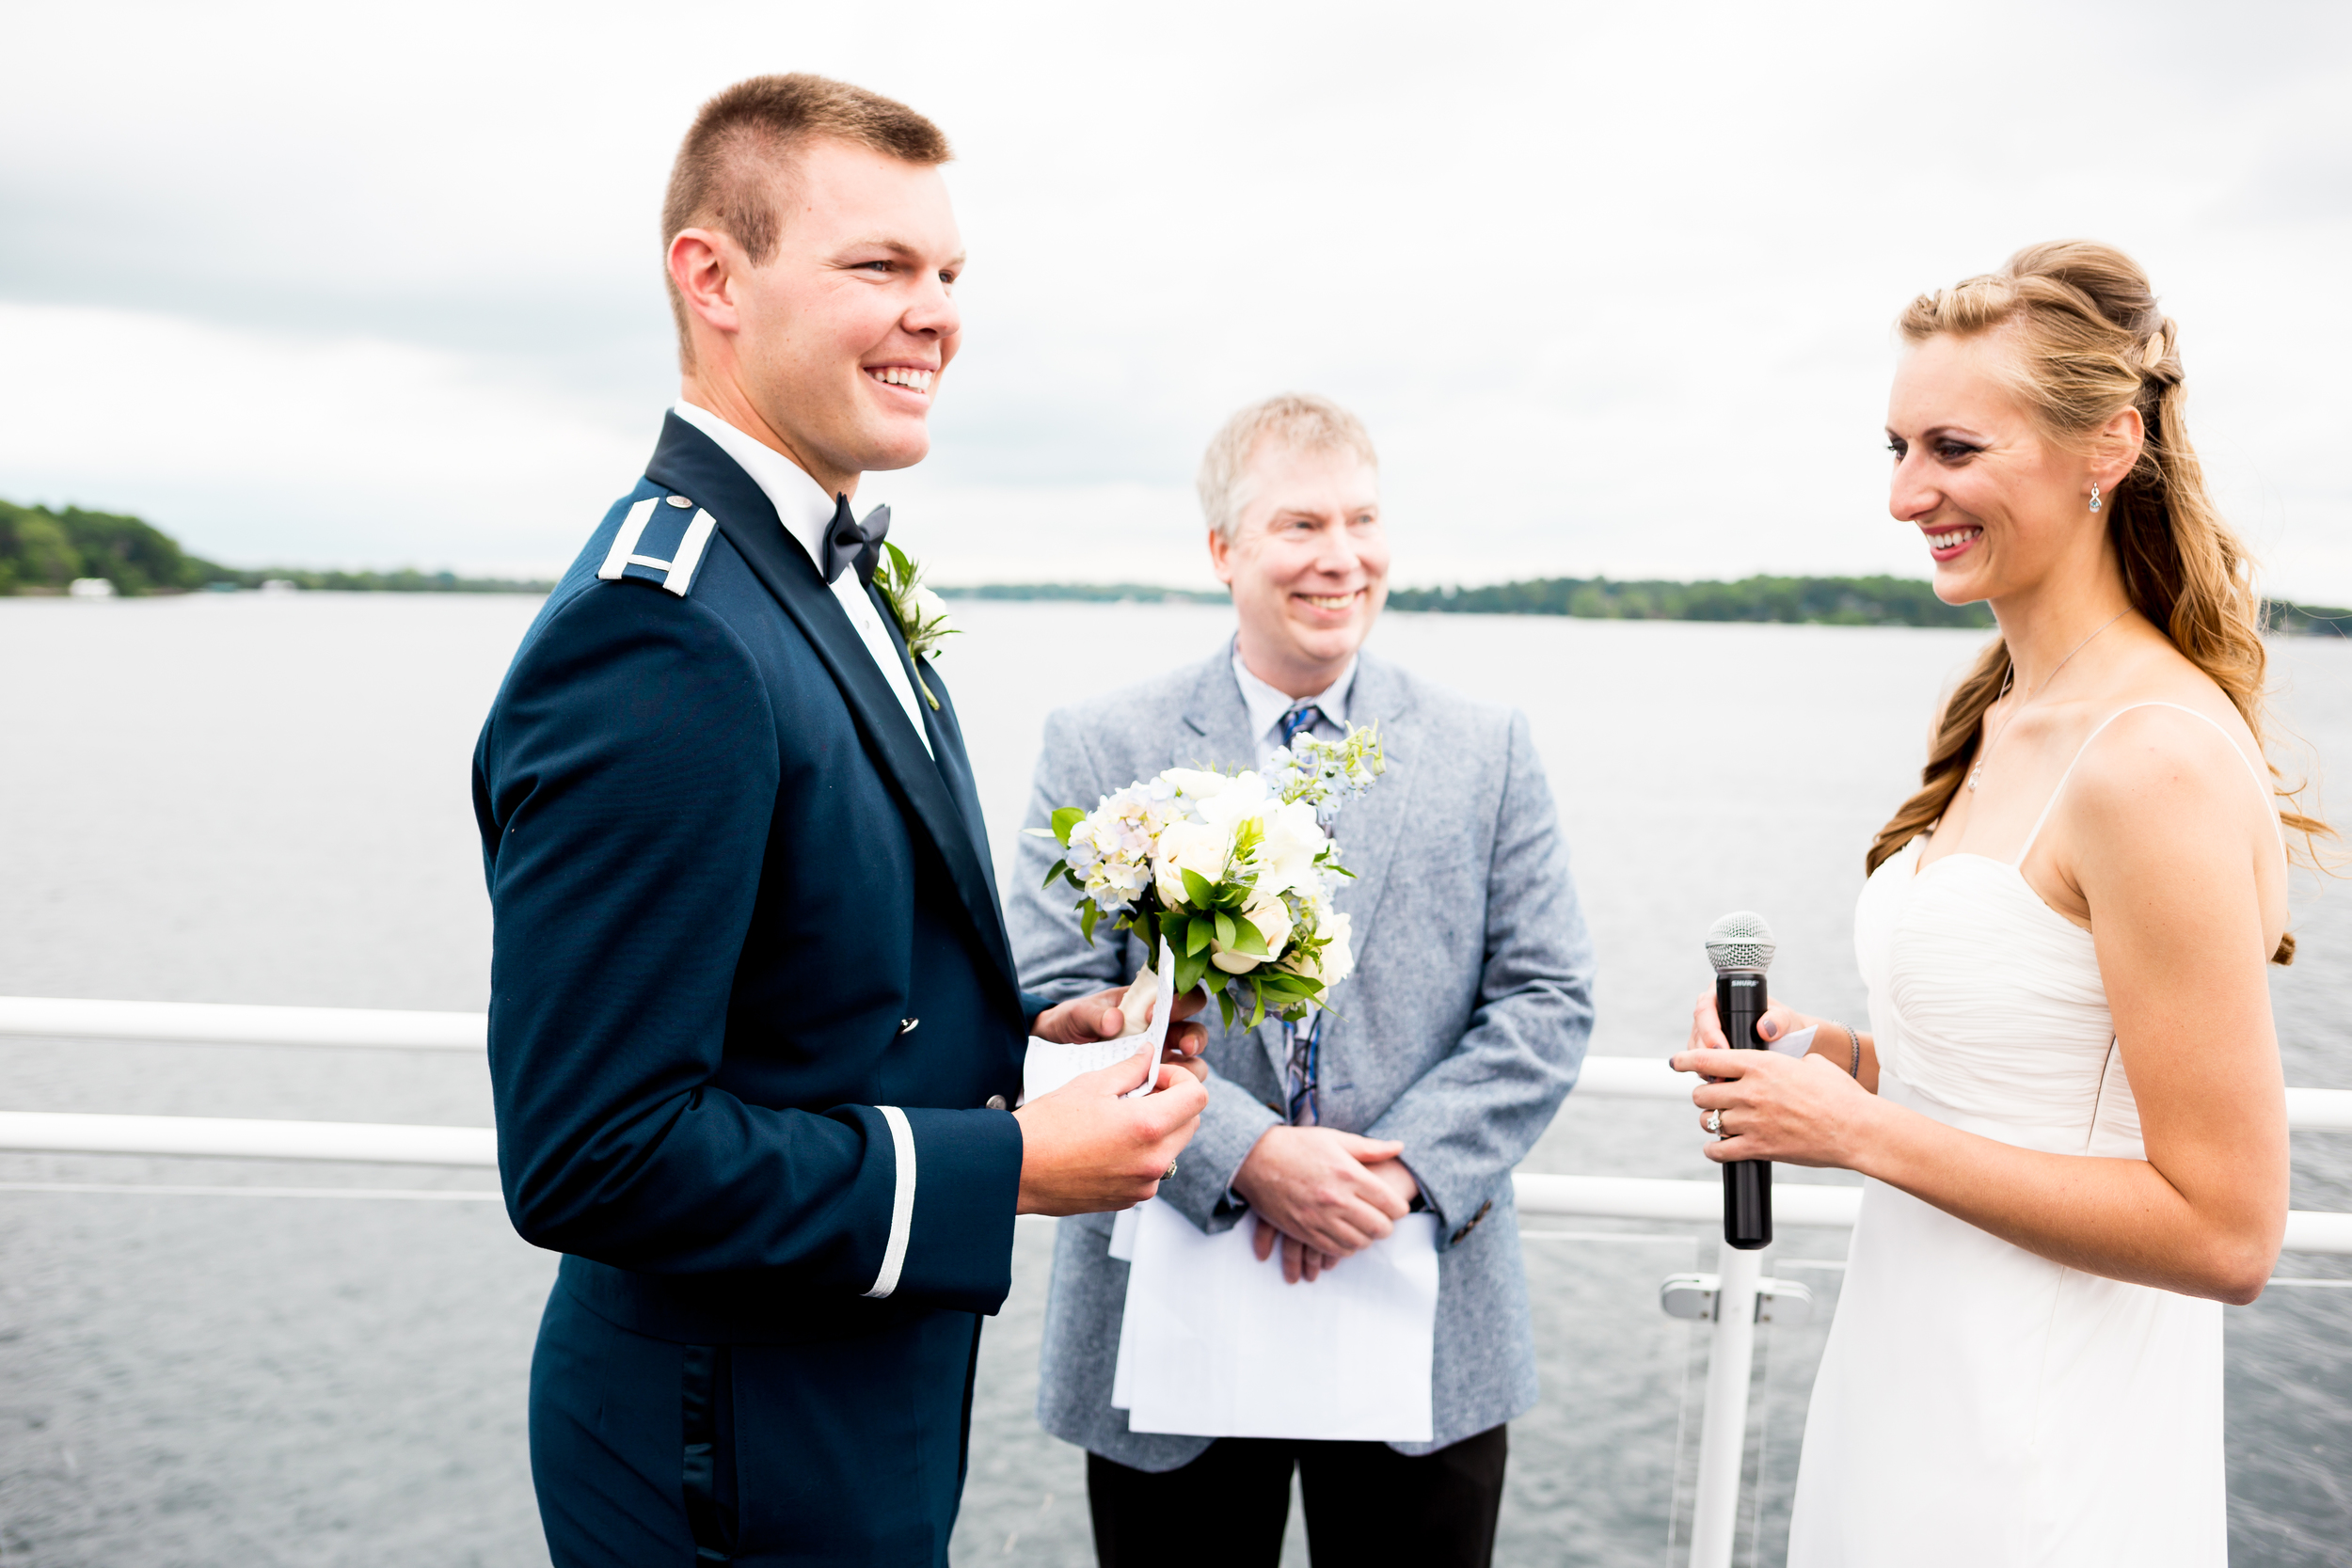 I don't think Jesse had planned on holding his bride's bouquet for her that day, but I guess he didn't mind too much!!